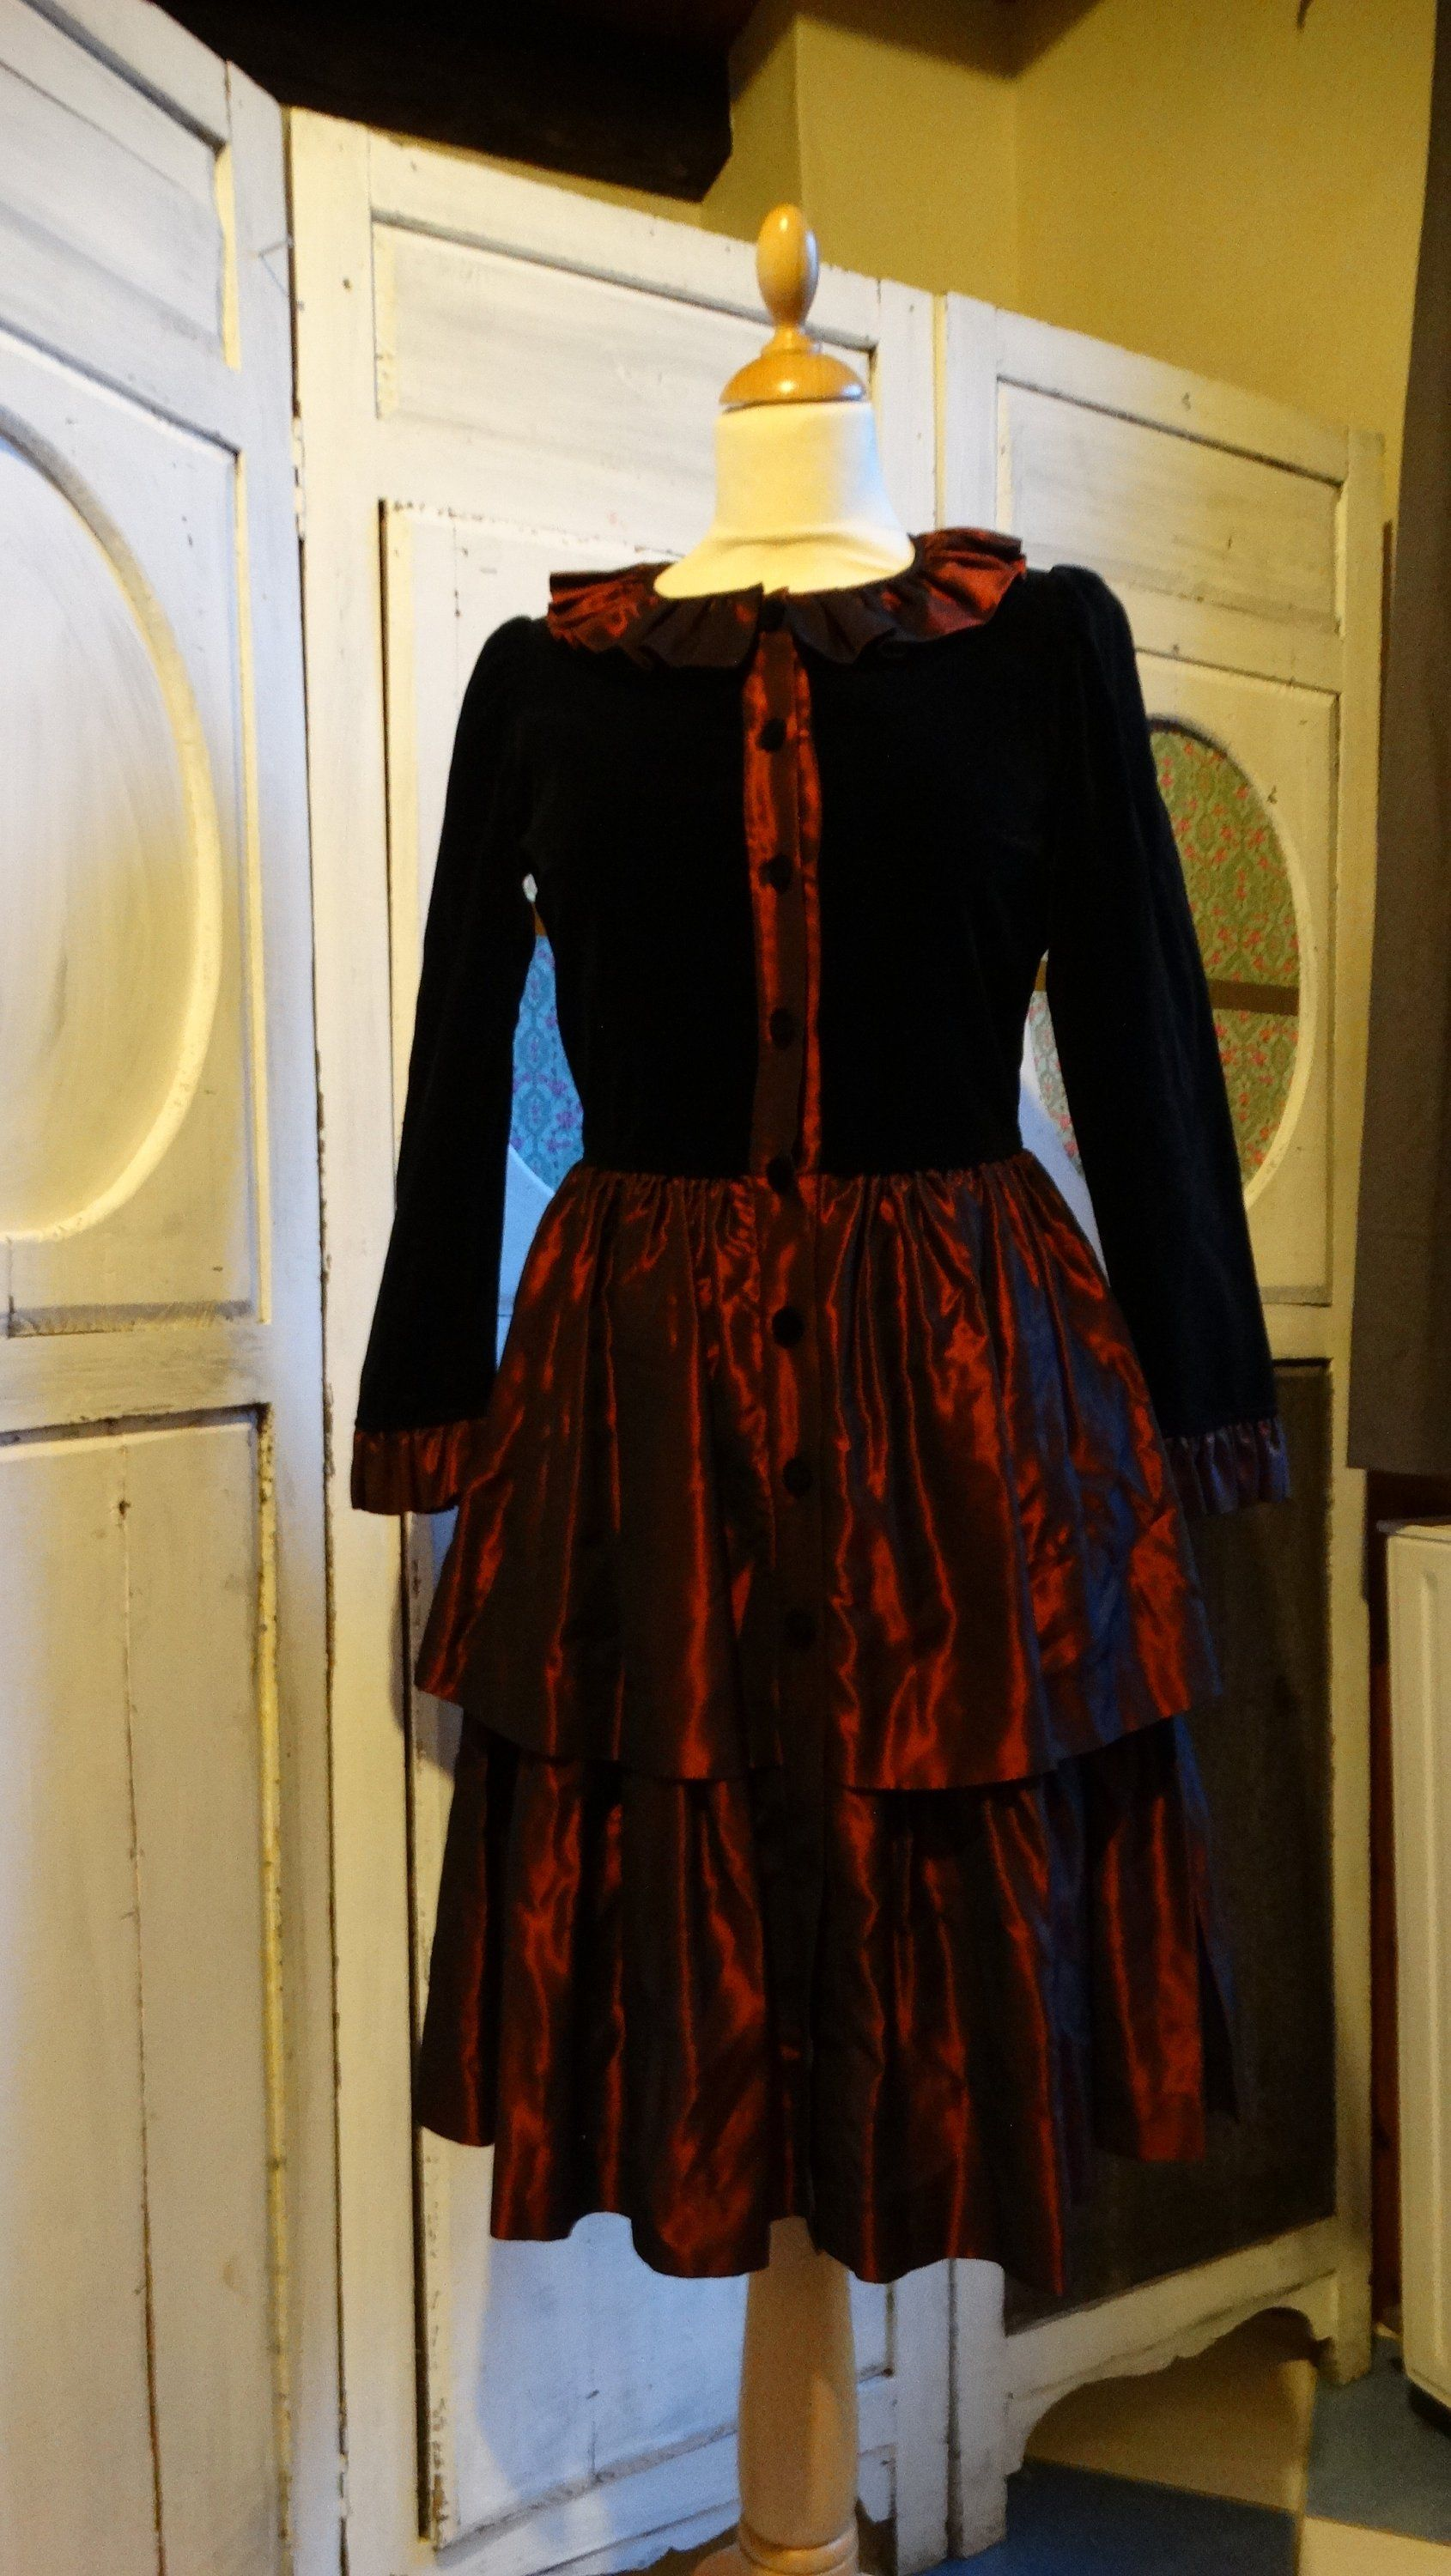 Robe femme vintage 1990 marque made in France marque BONPOINT taille 36